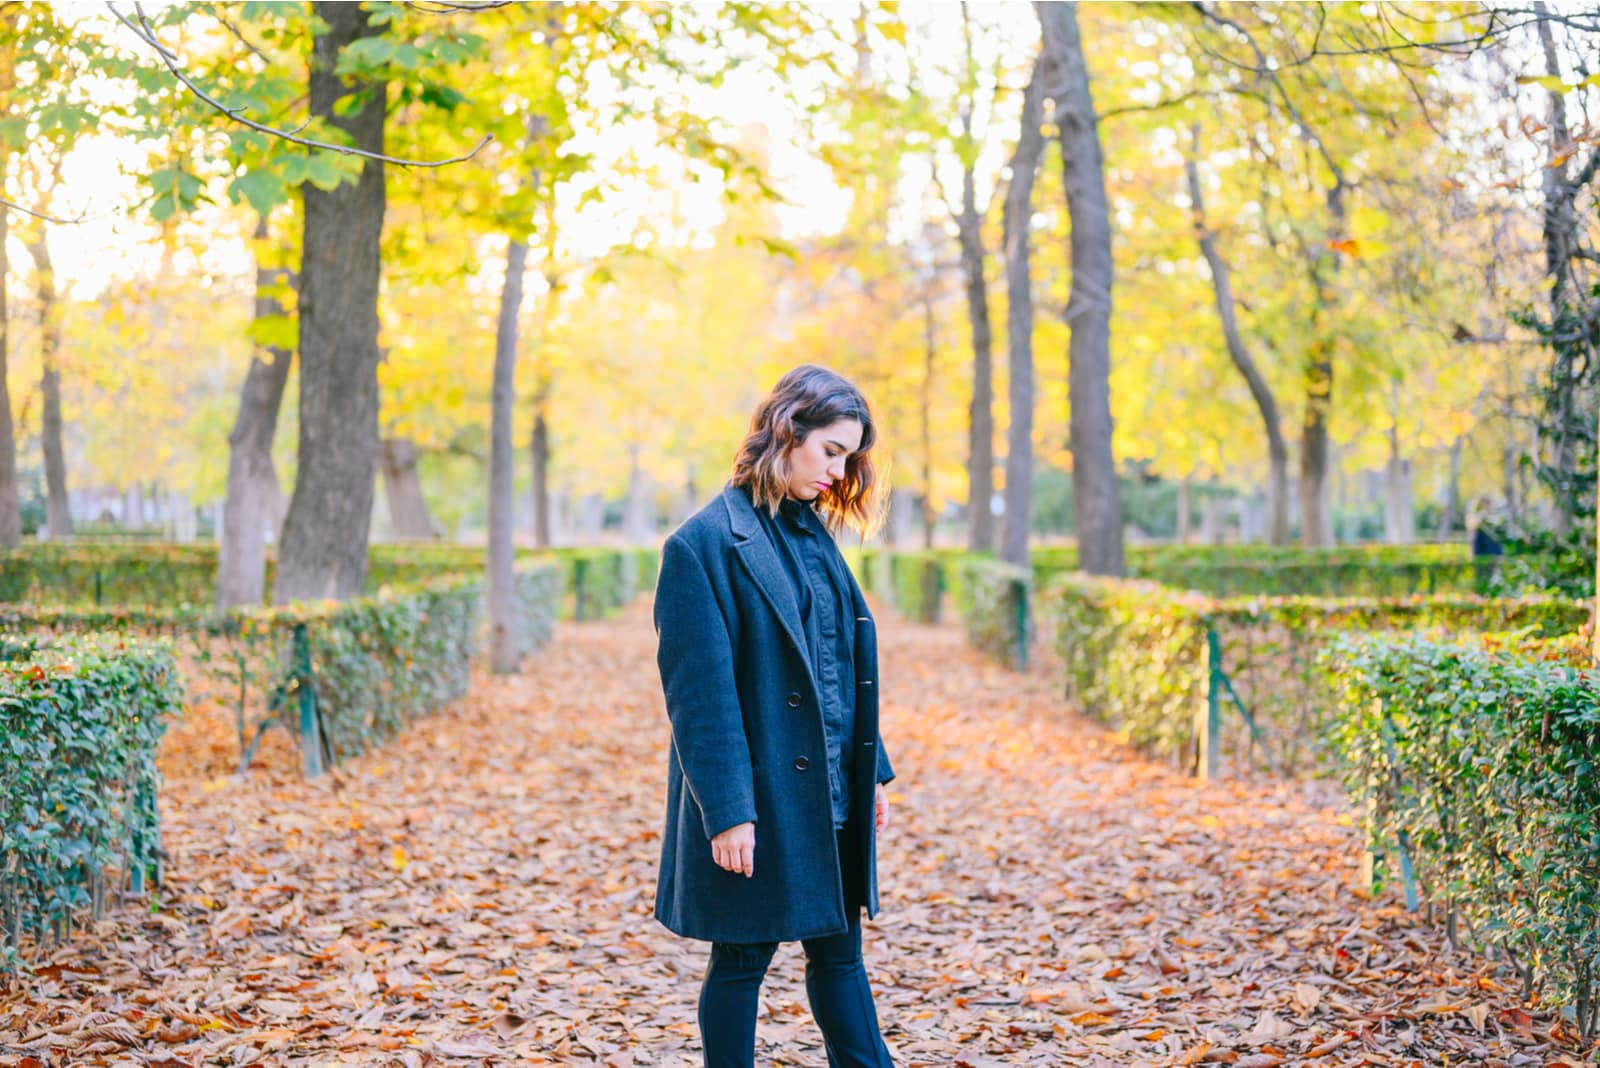 autumn in the park stands a sad woman